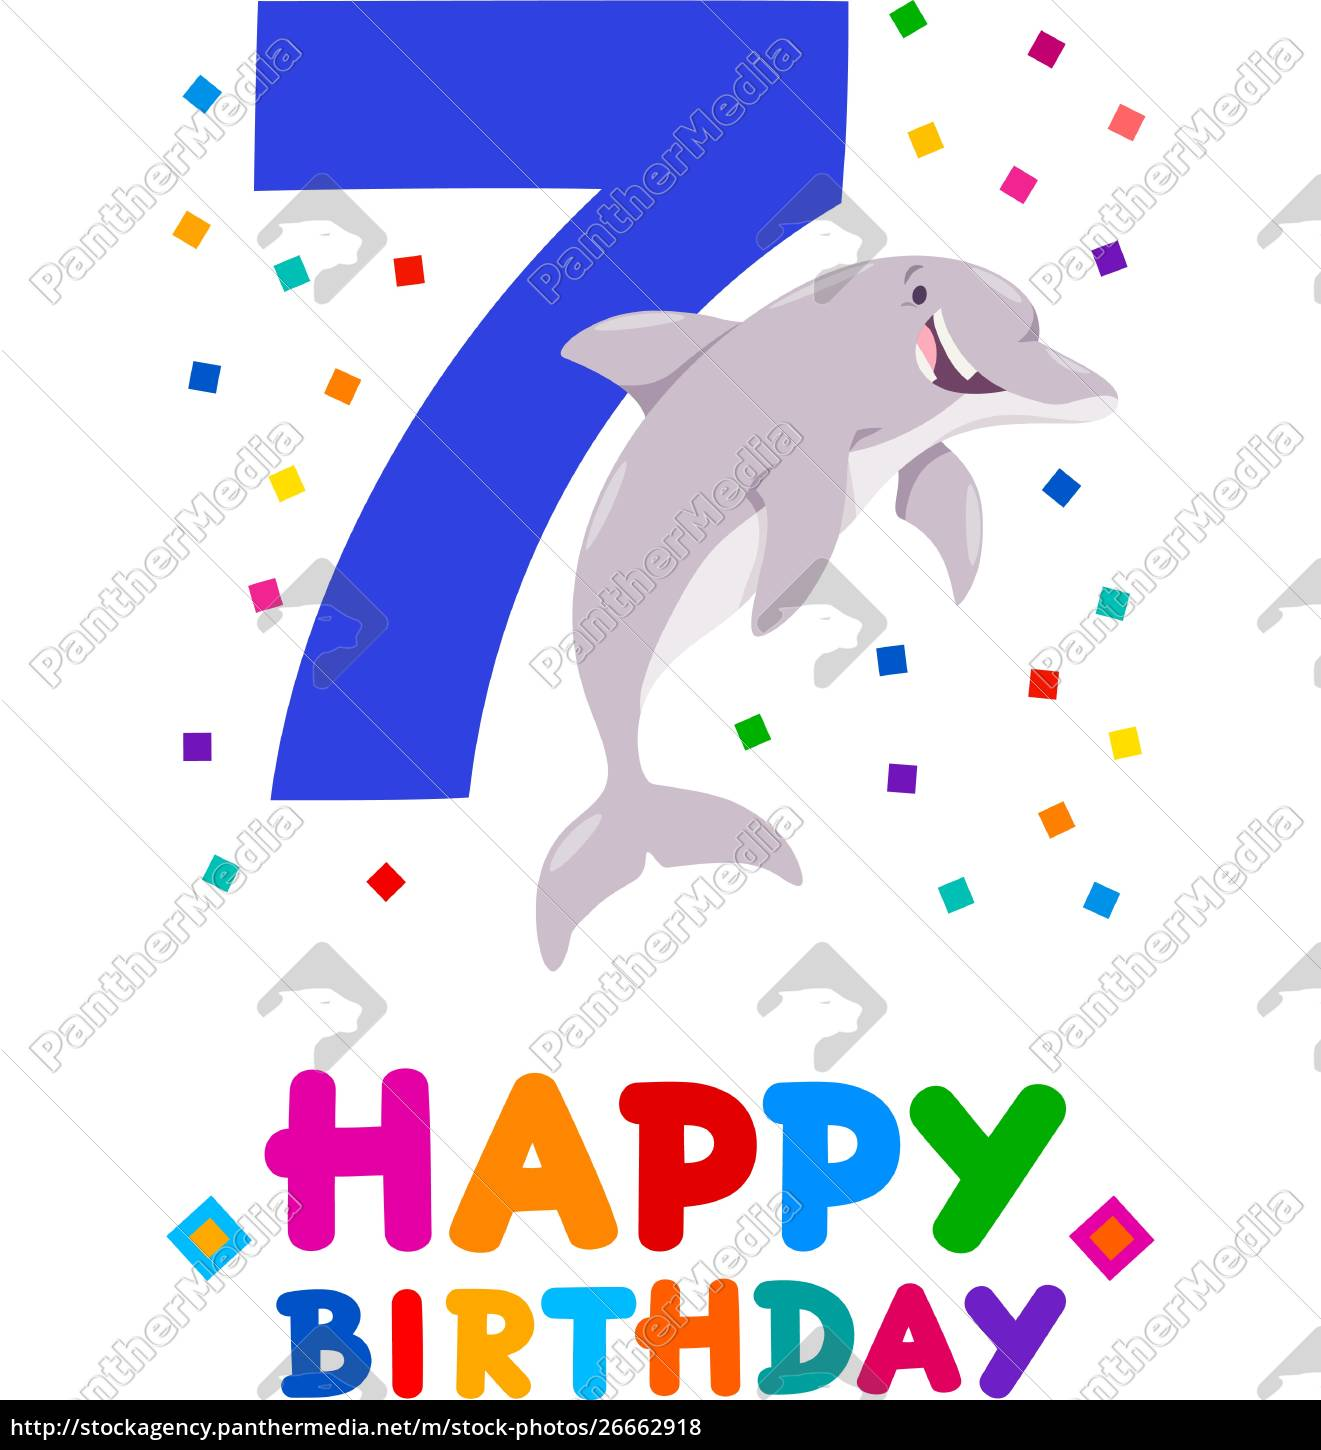 Seventh Birthday Cartoon Greeting Card Design